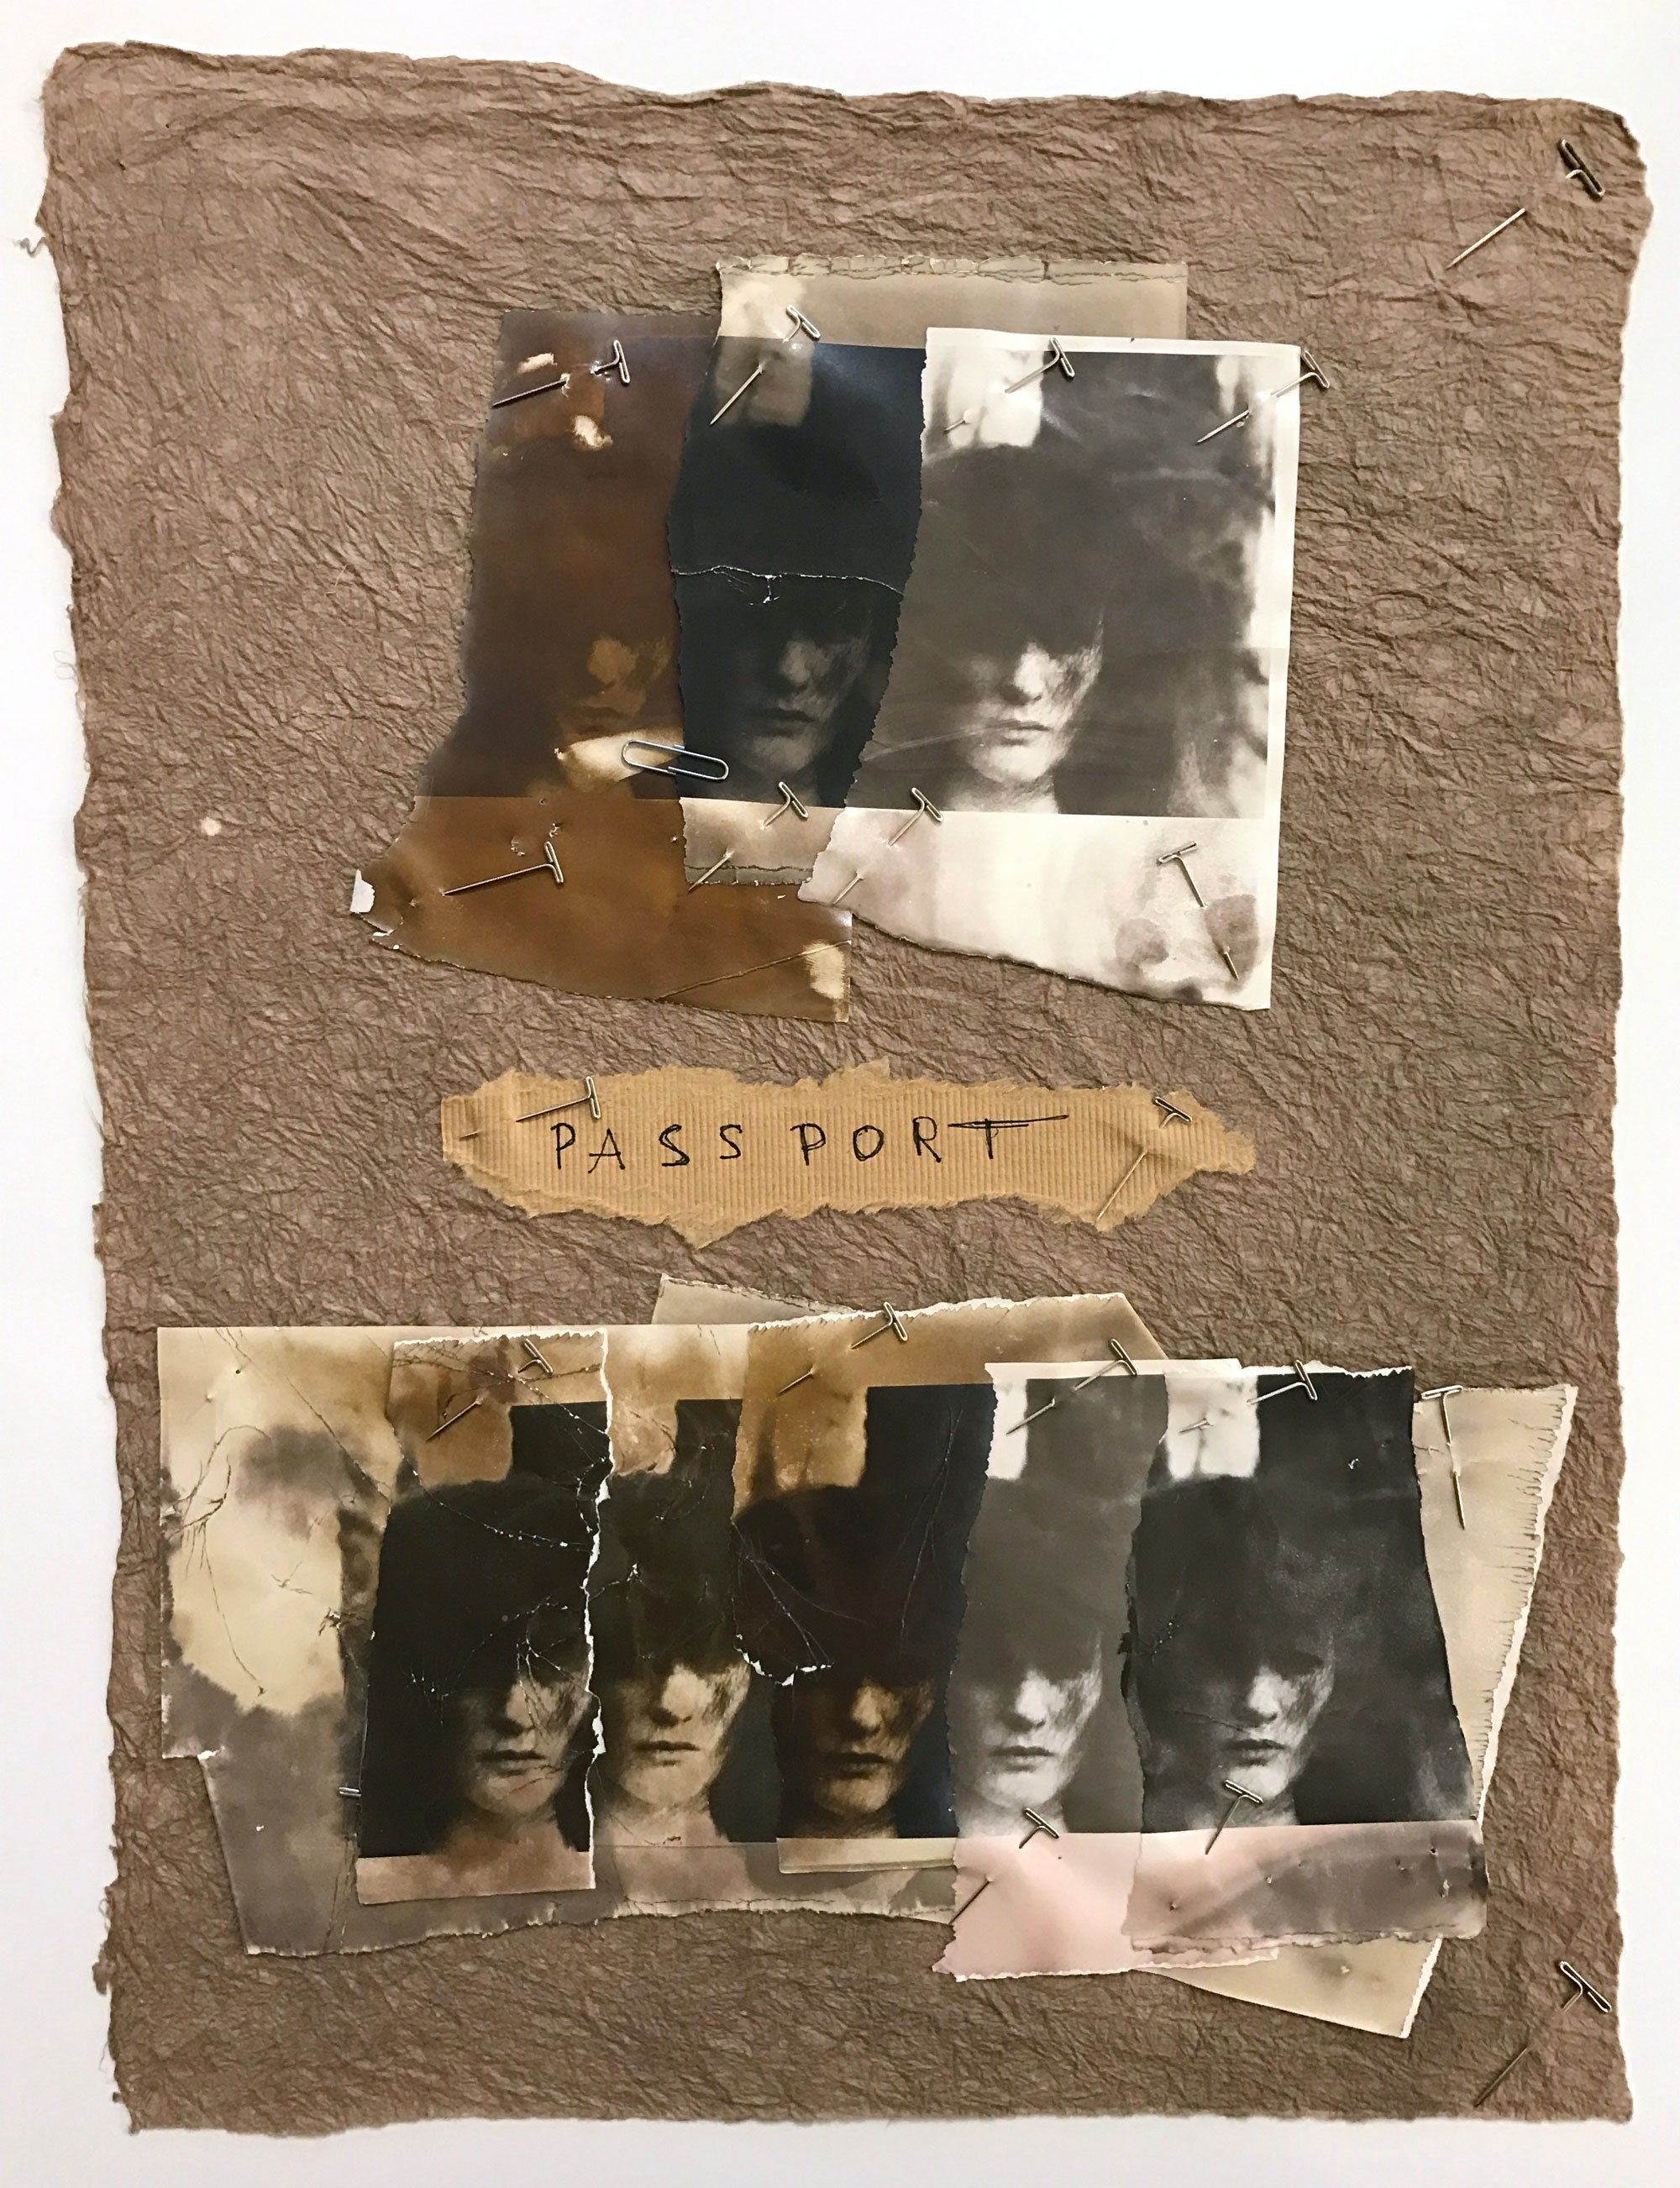 Deborah Turbeville, <em>Passport</em>, 1977. Collage of eight gelatin silver prints mounted on paper, 18 x 13 inches. Courtesy  Deborah Bell Photographs, New York.